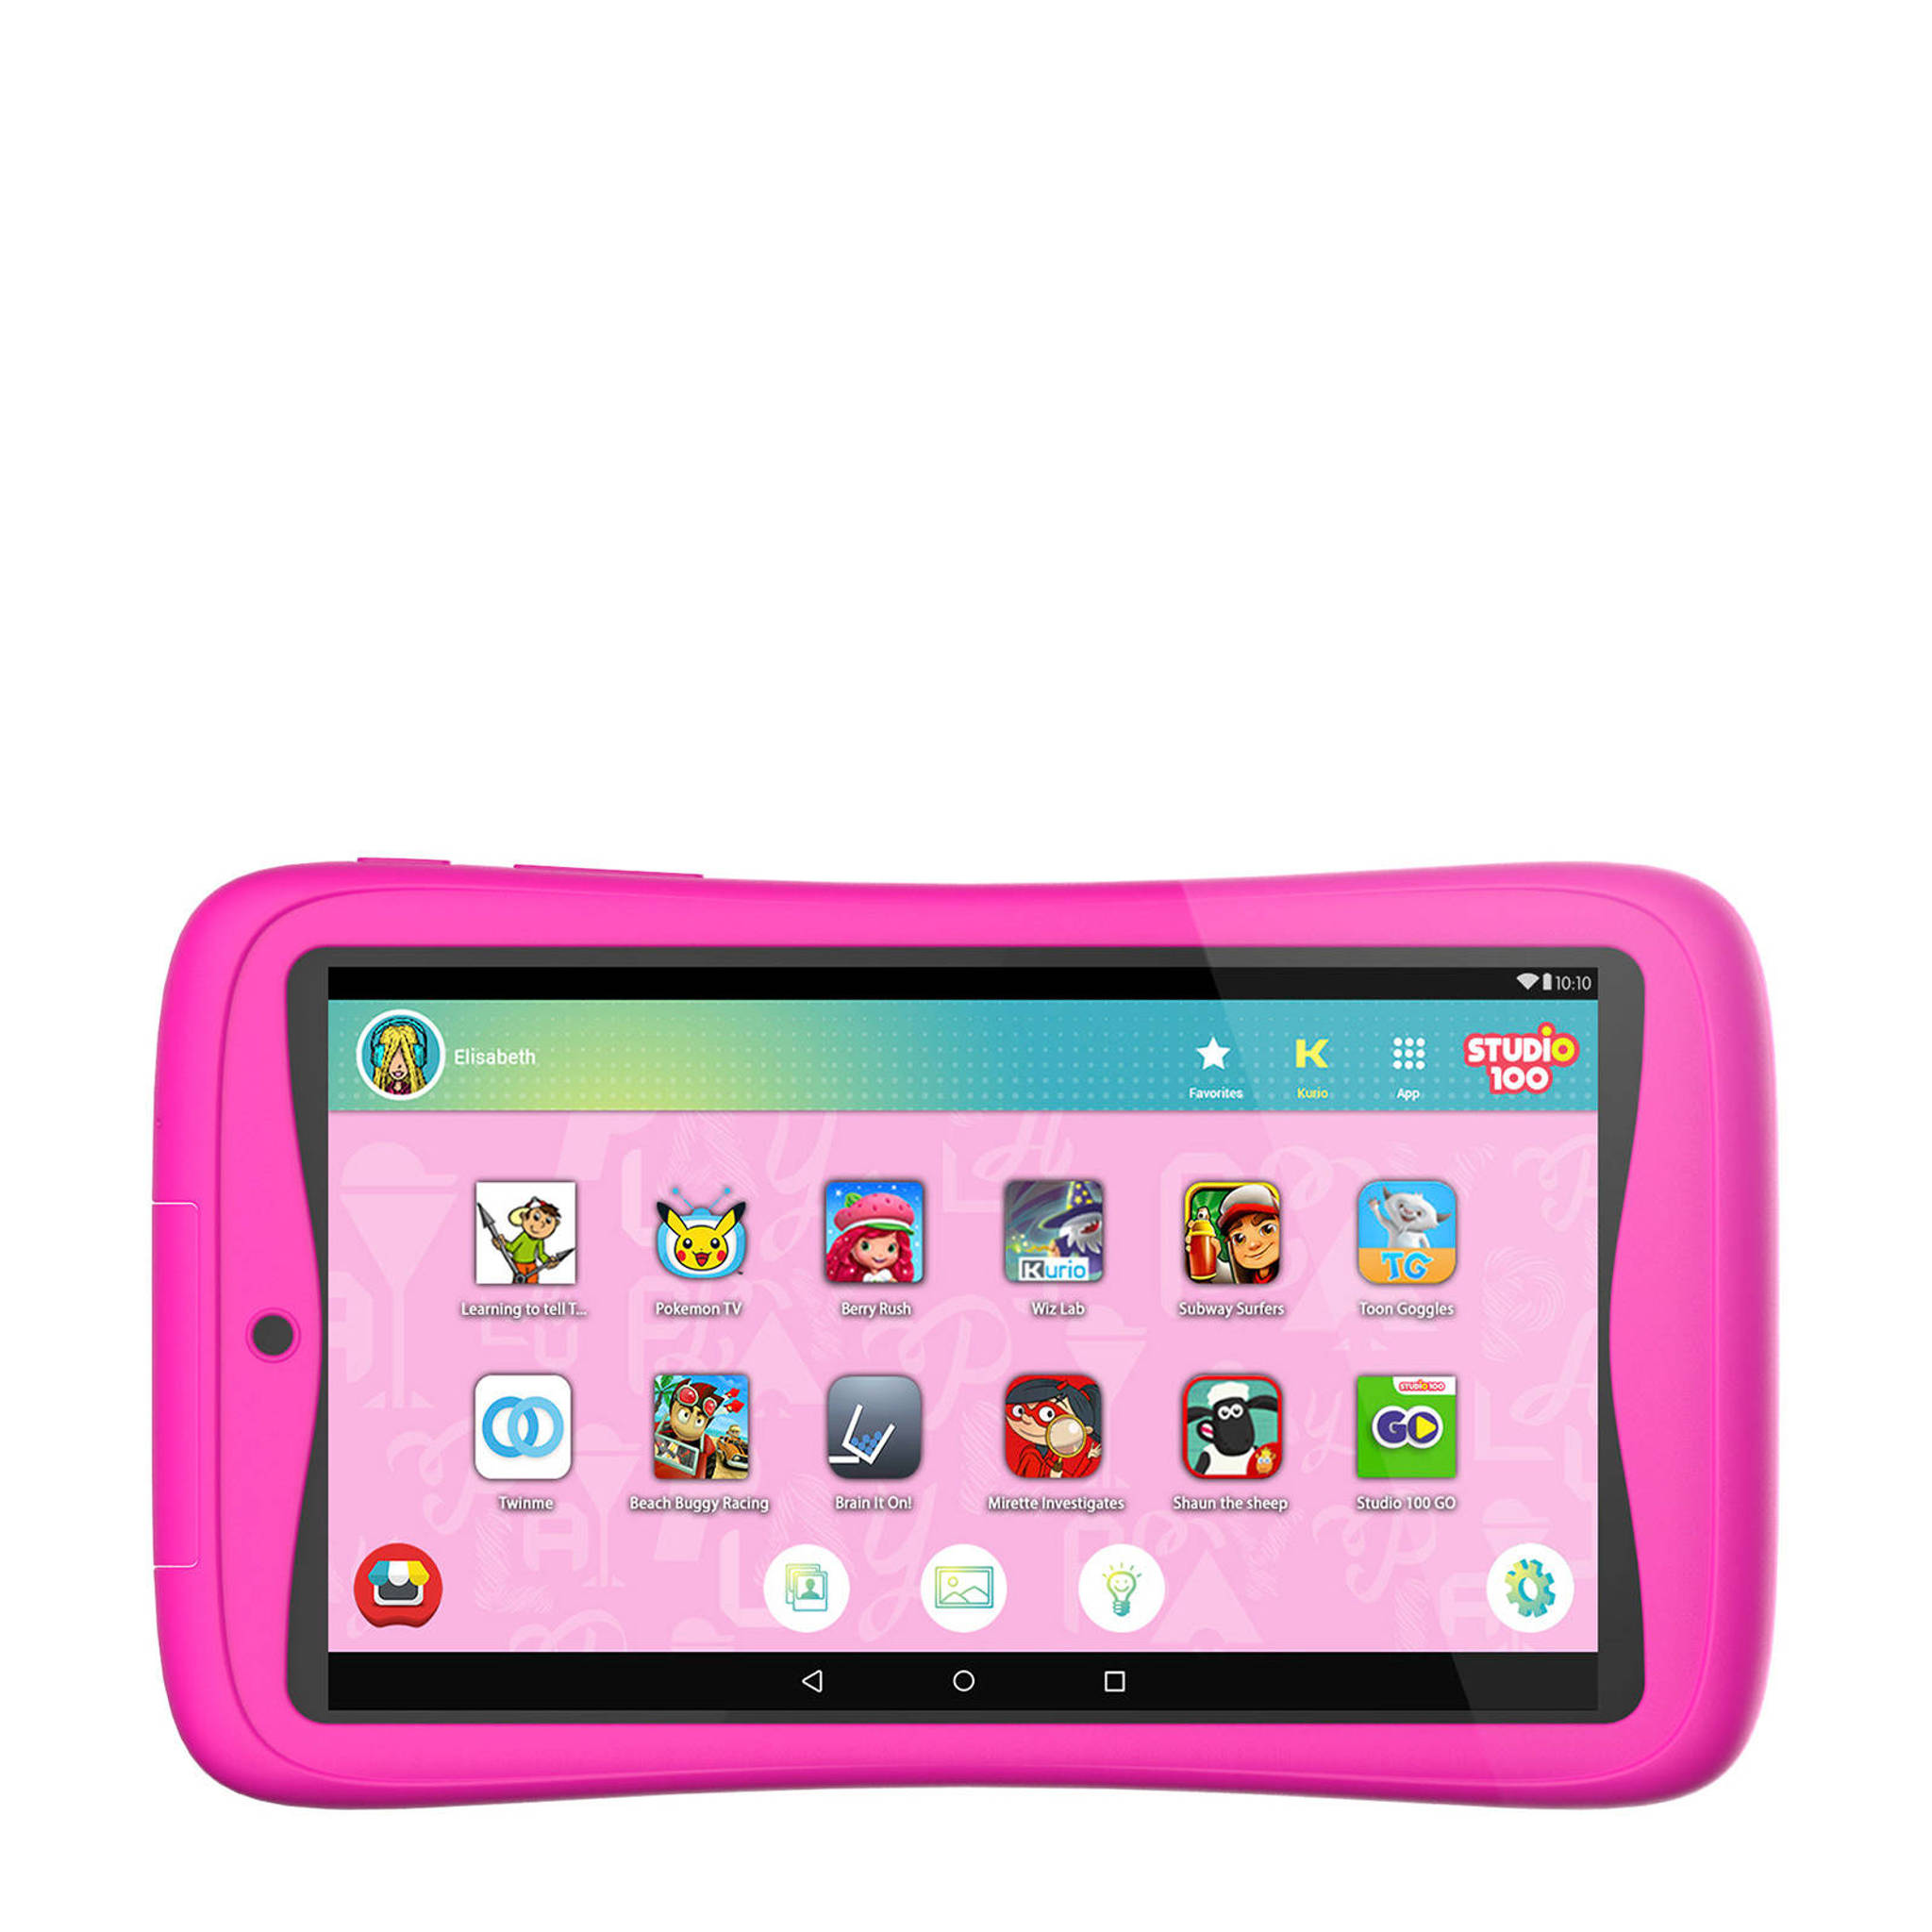 Roze Kinder Tablet.Tab Connect Studio 100 Kindertablet Roze16gb